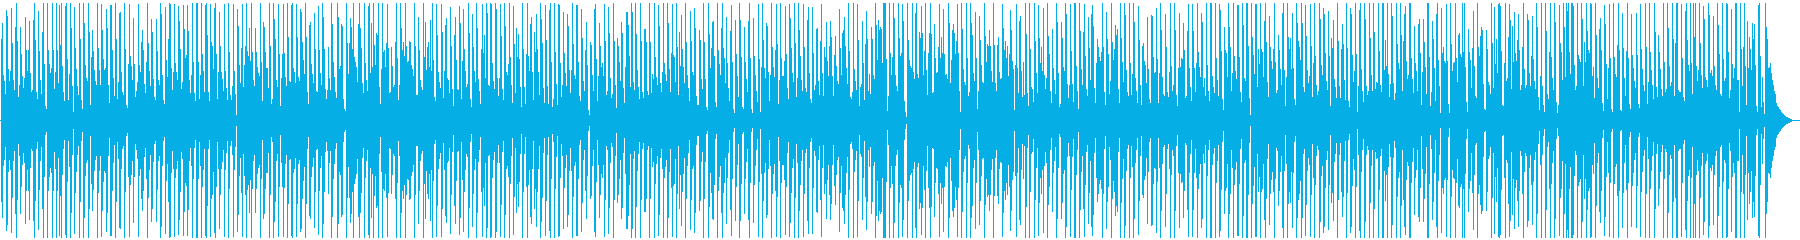 [High sound quality]  Walking jazz with cute tuba's reproduced waveform